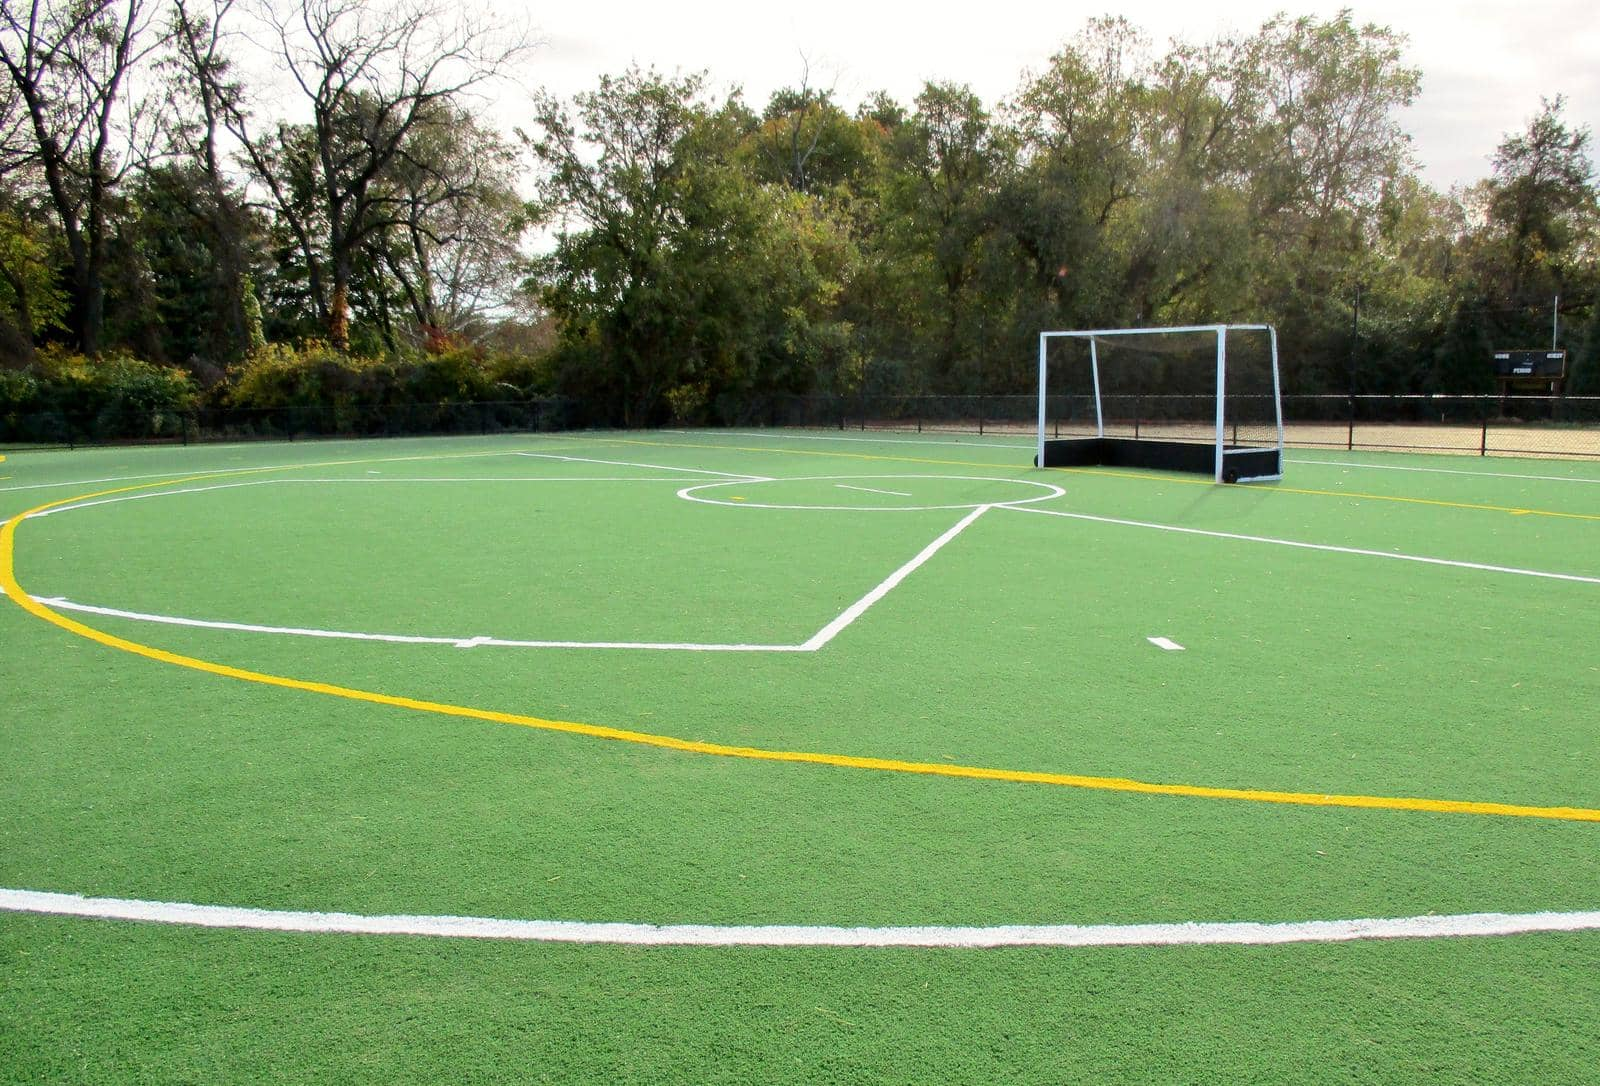 Artificial Grass Surface Used for Sports Fields